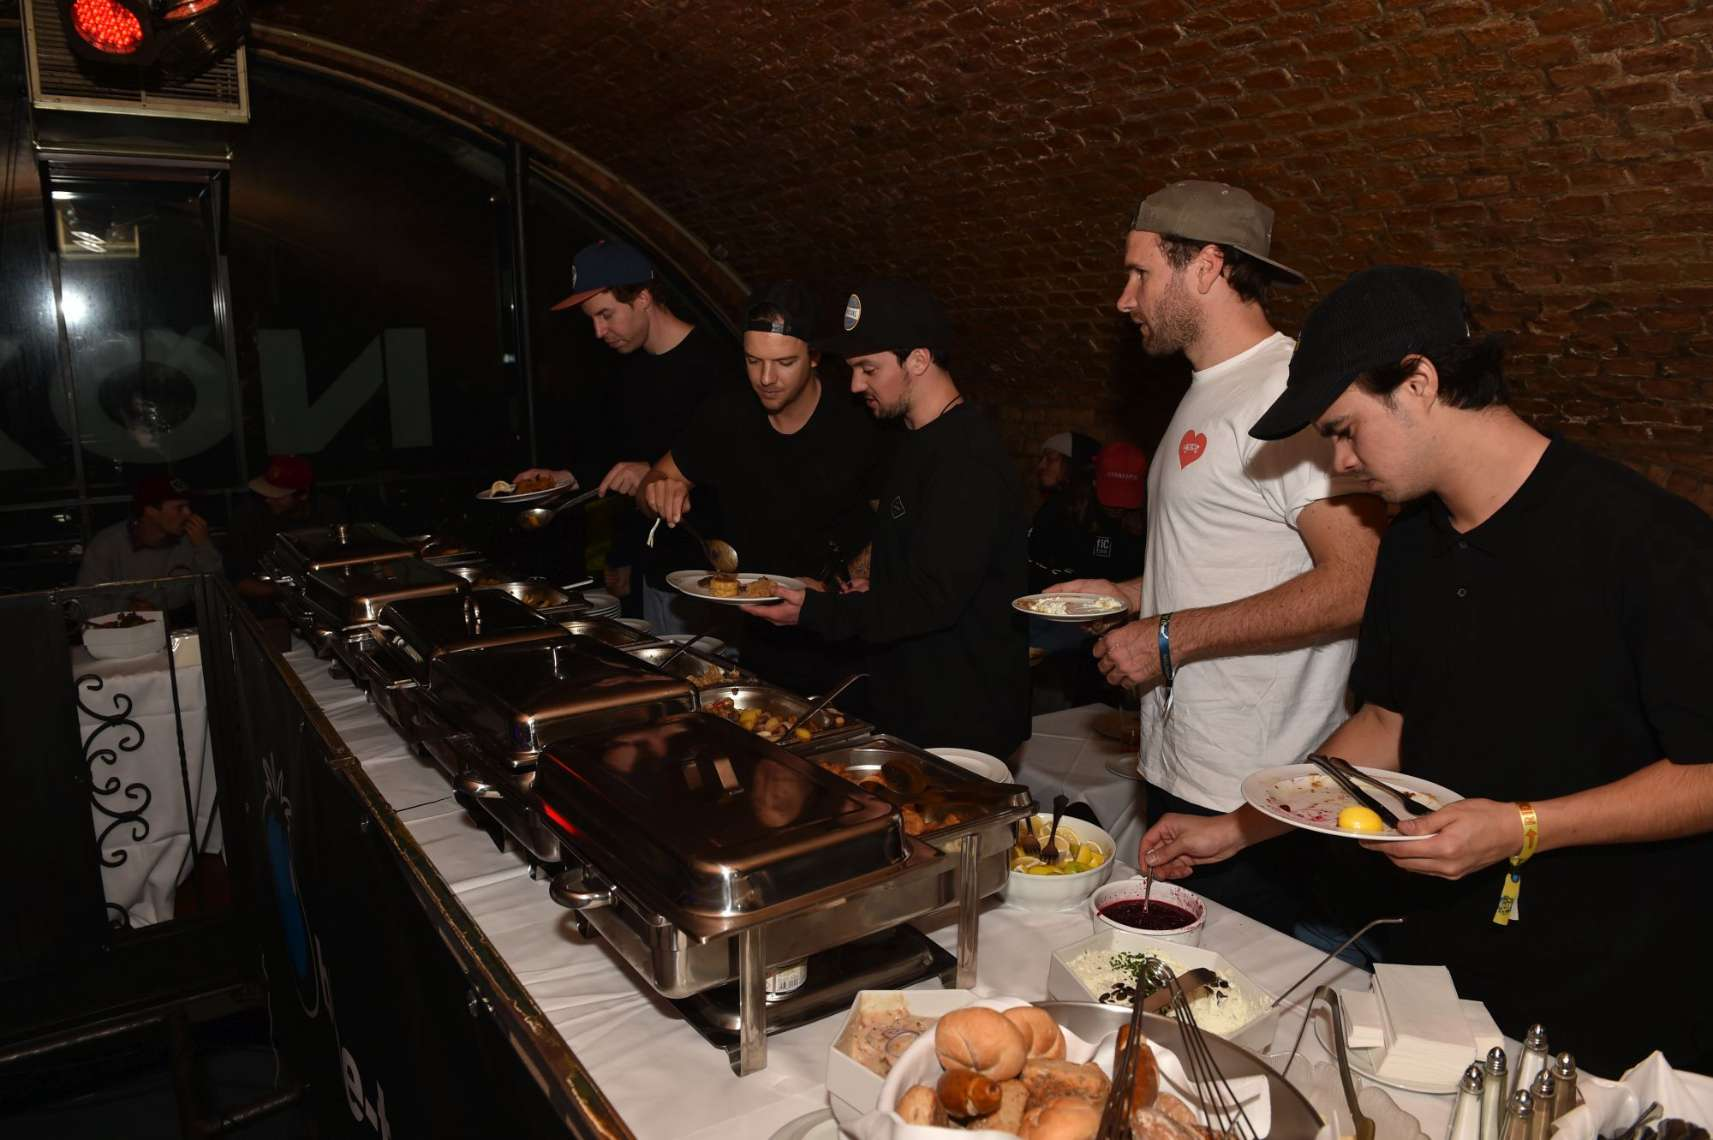 Before the movie premieres started, riders enjoyed some classic Austrian dinner